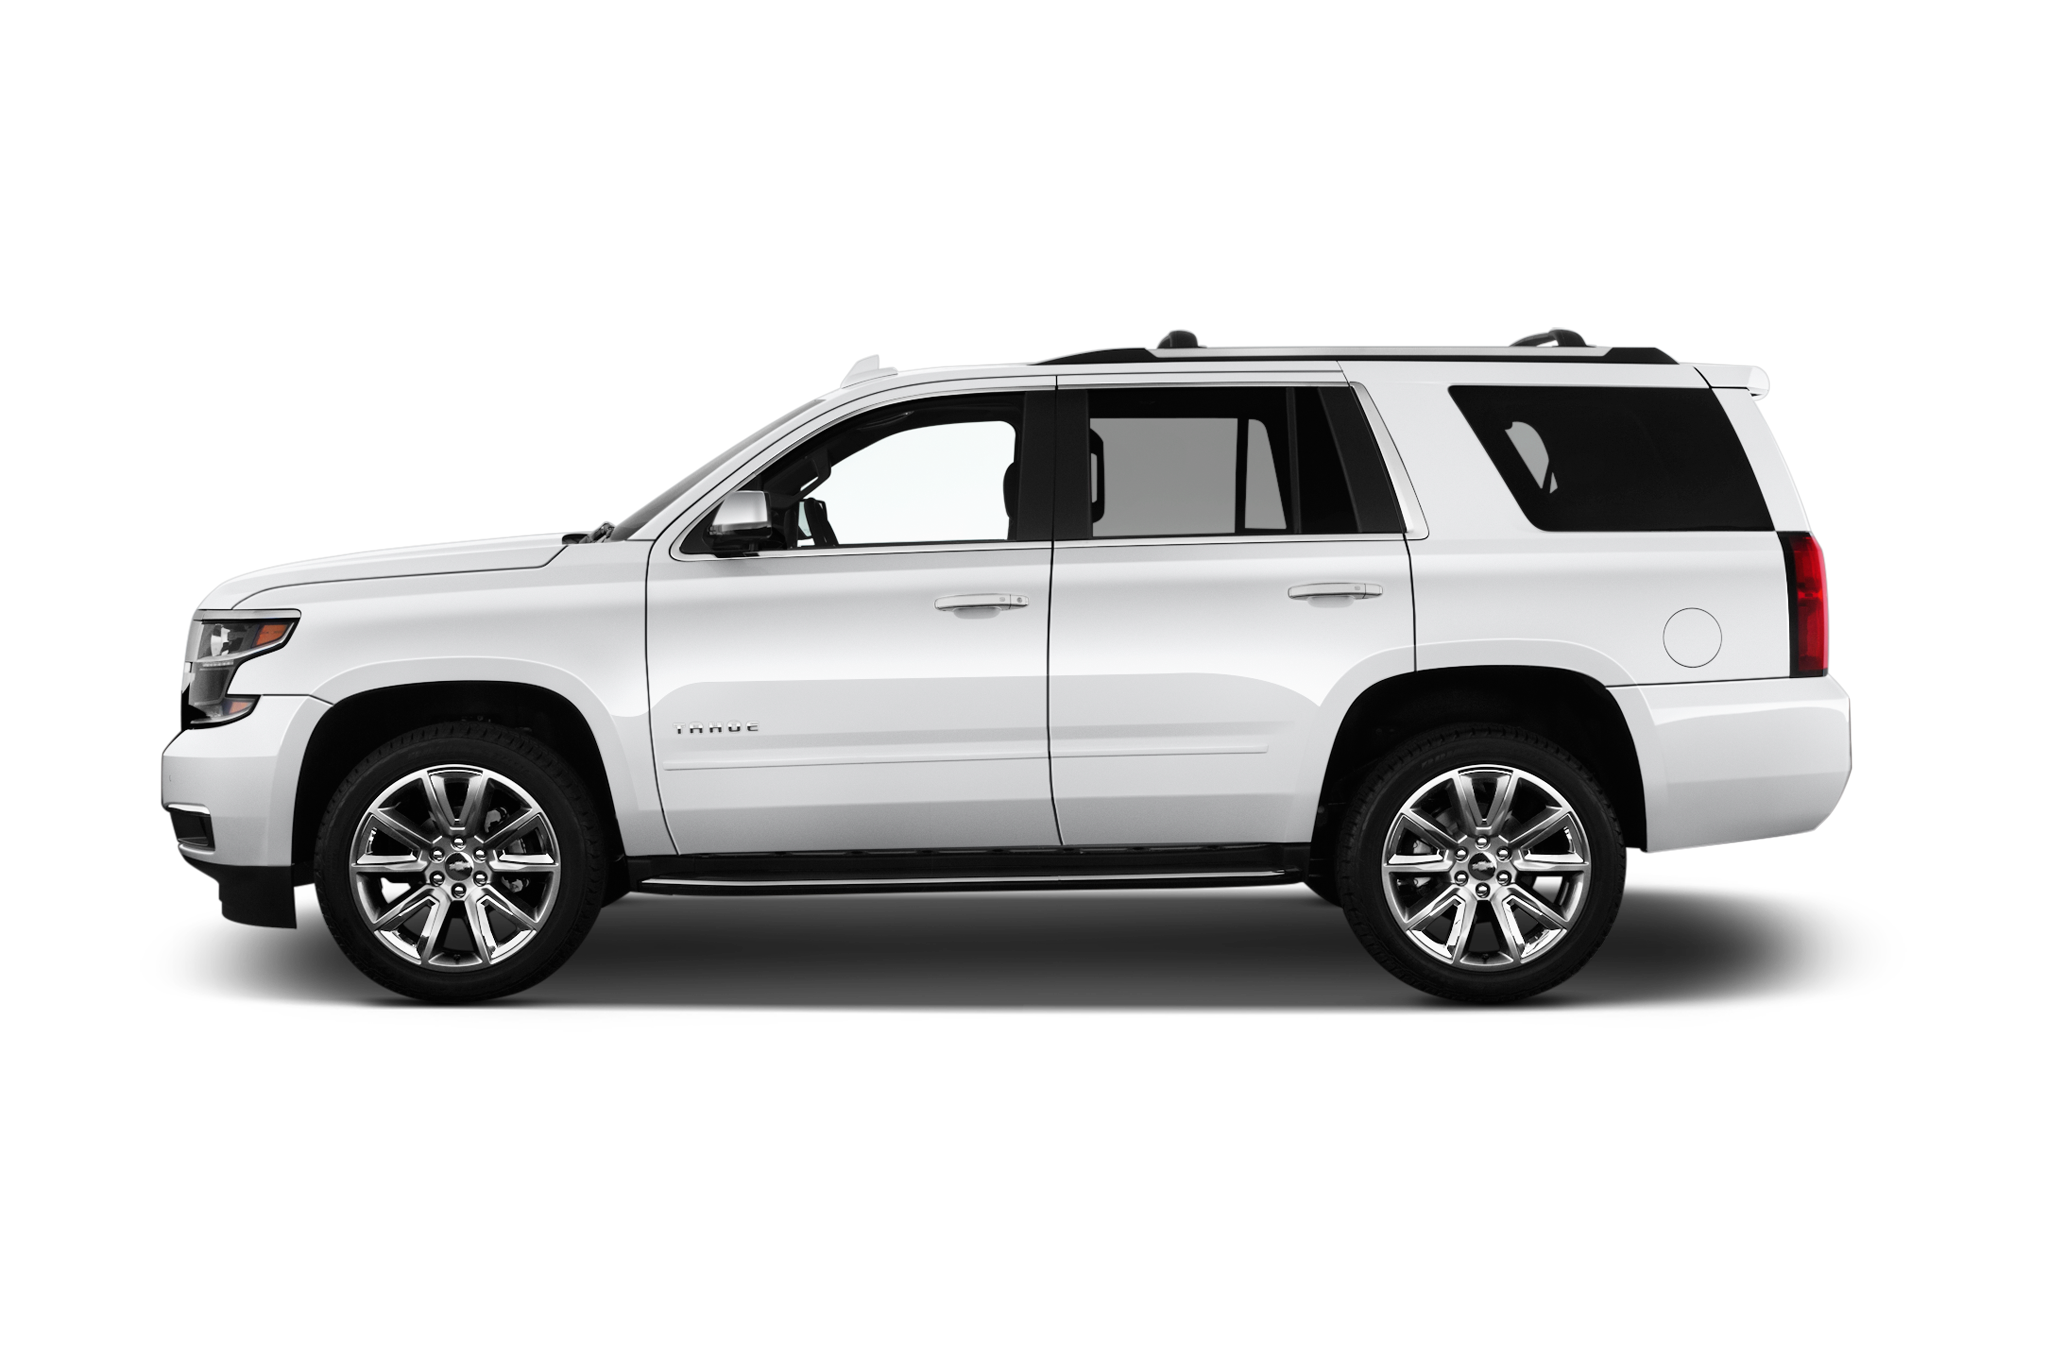 2017 Chevrolet Tahoe 4WD LT One Week Review | Automobile ...